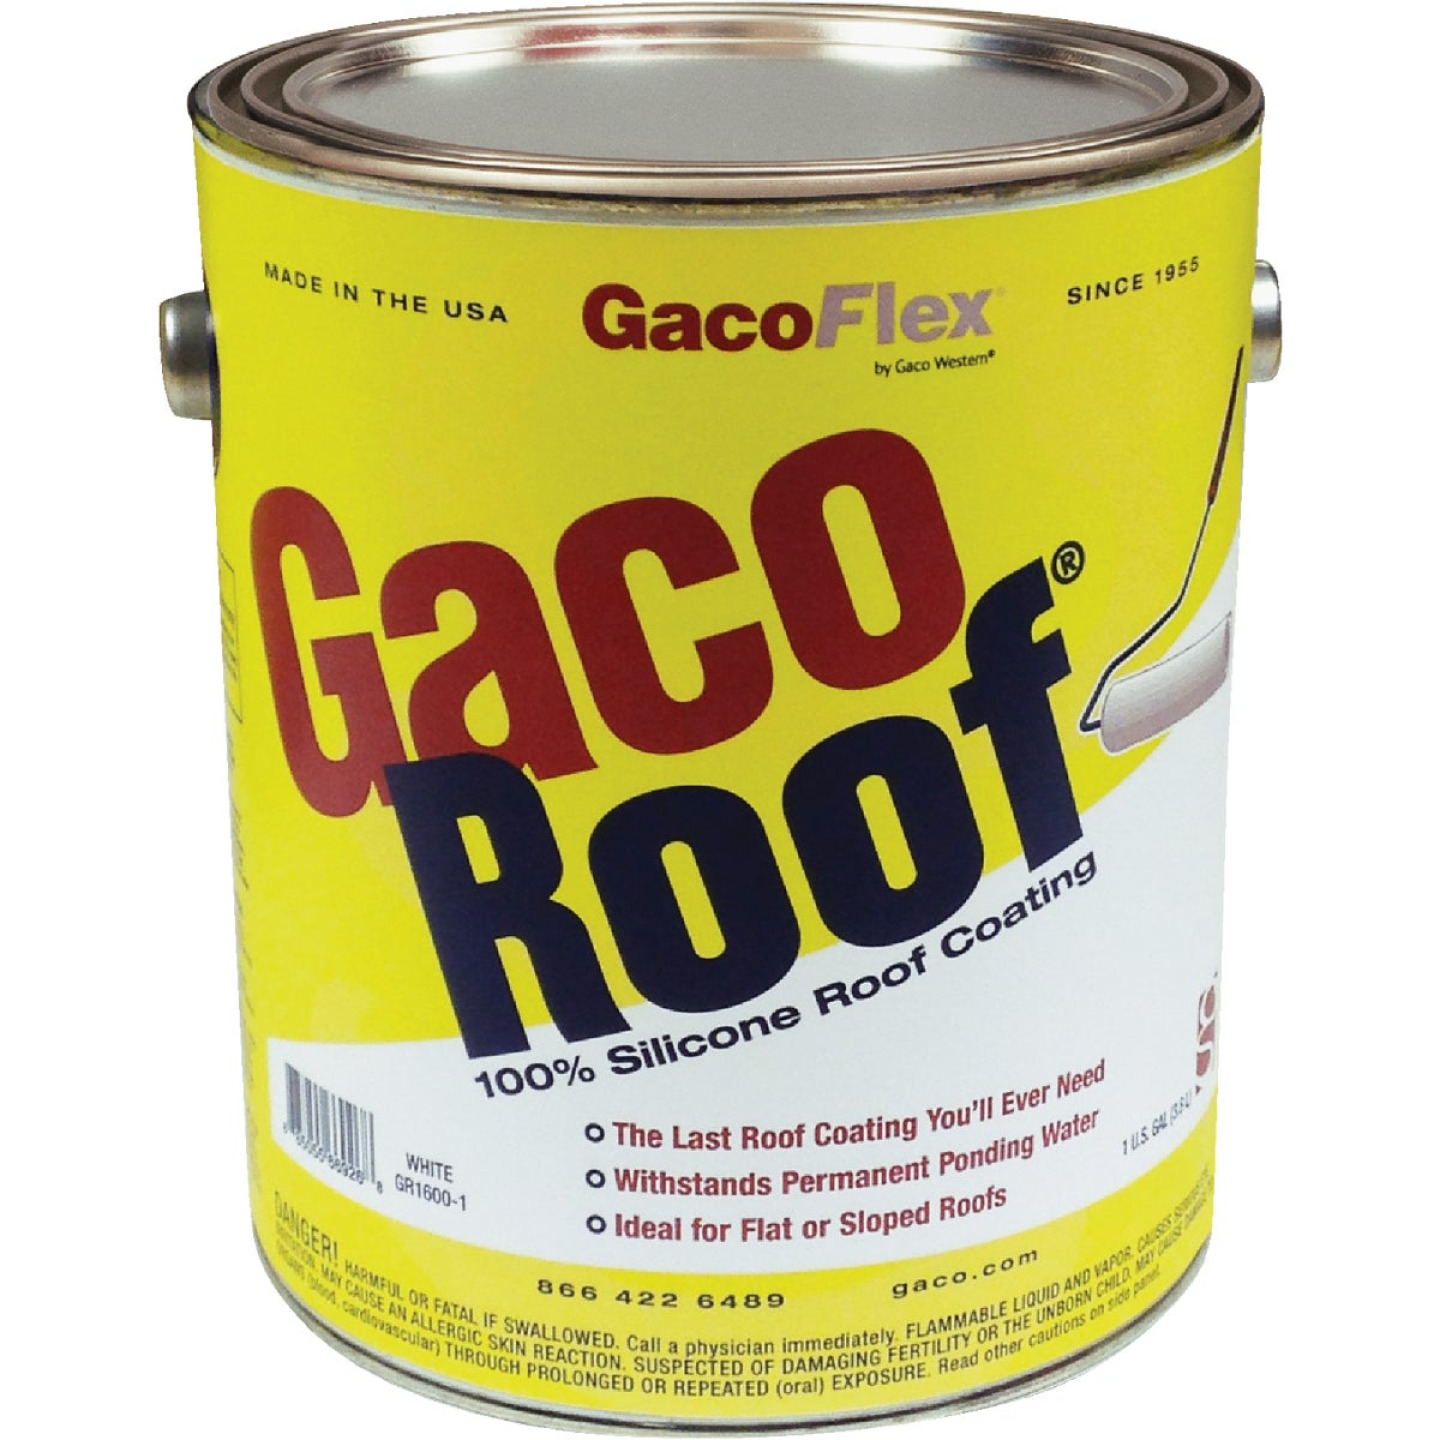 GacoFlex GacoRoof VOC-Compliant Silicone Roof Coating, White, 1 Gal. Image 1